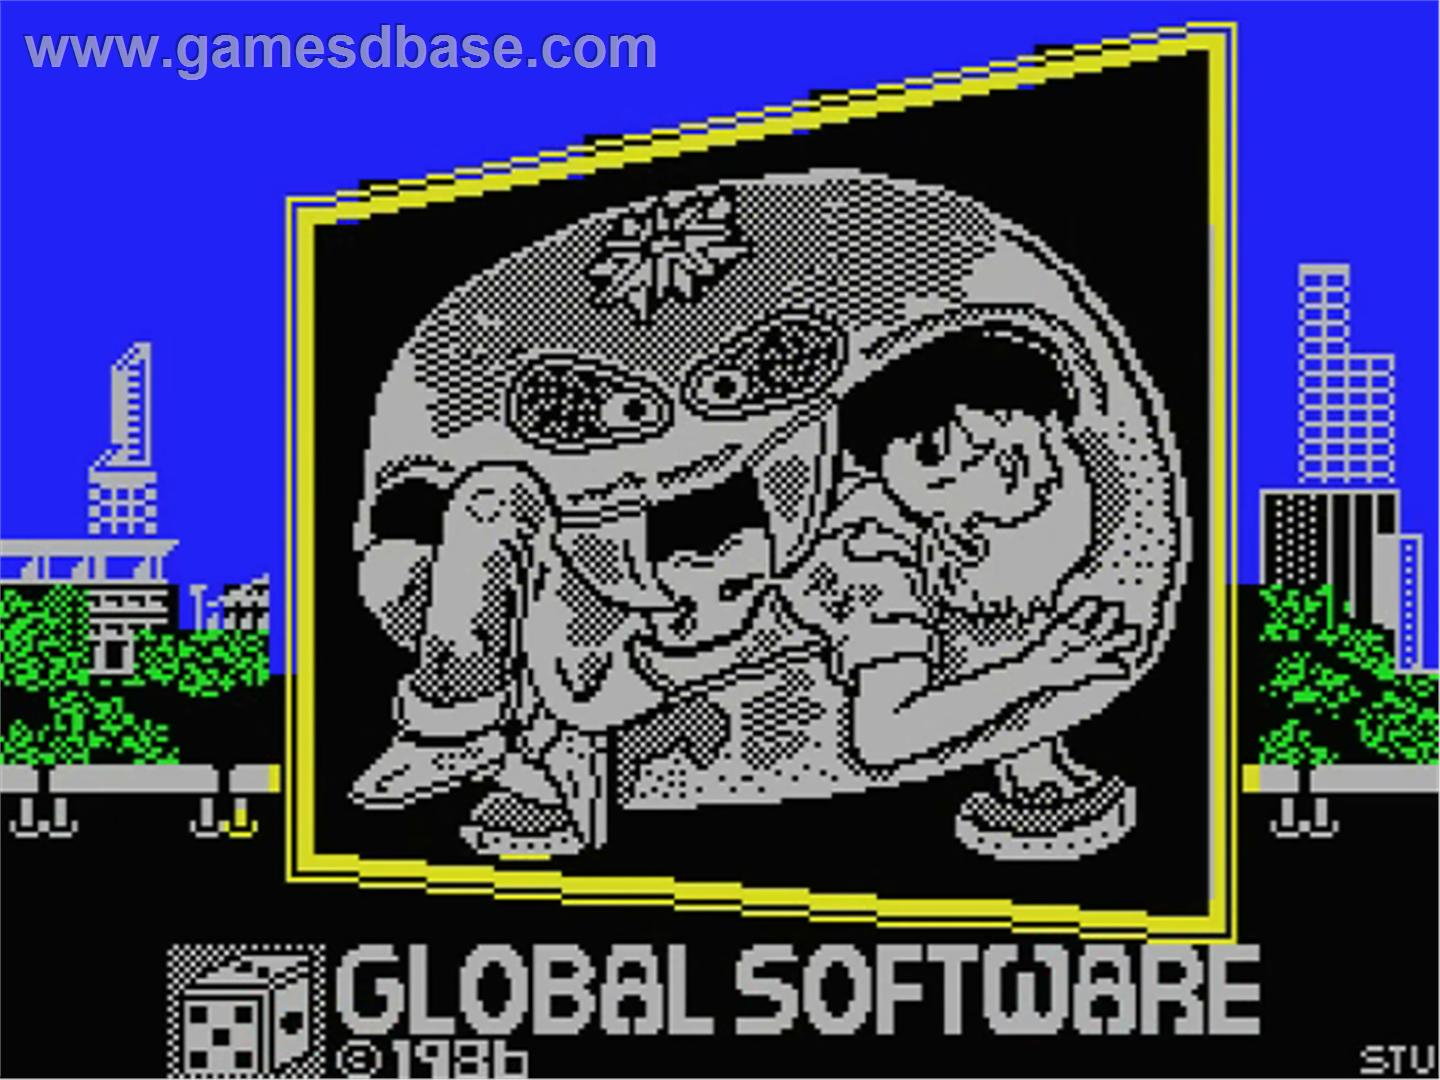 Attack_of_the_Killer_Tomatoes_-_1986_-_Global_Software[1].jpg